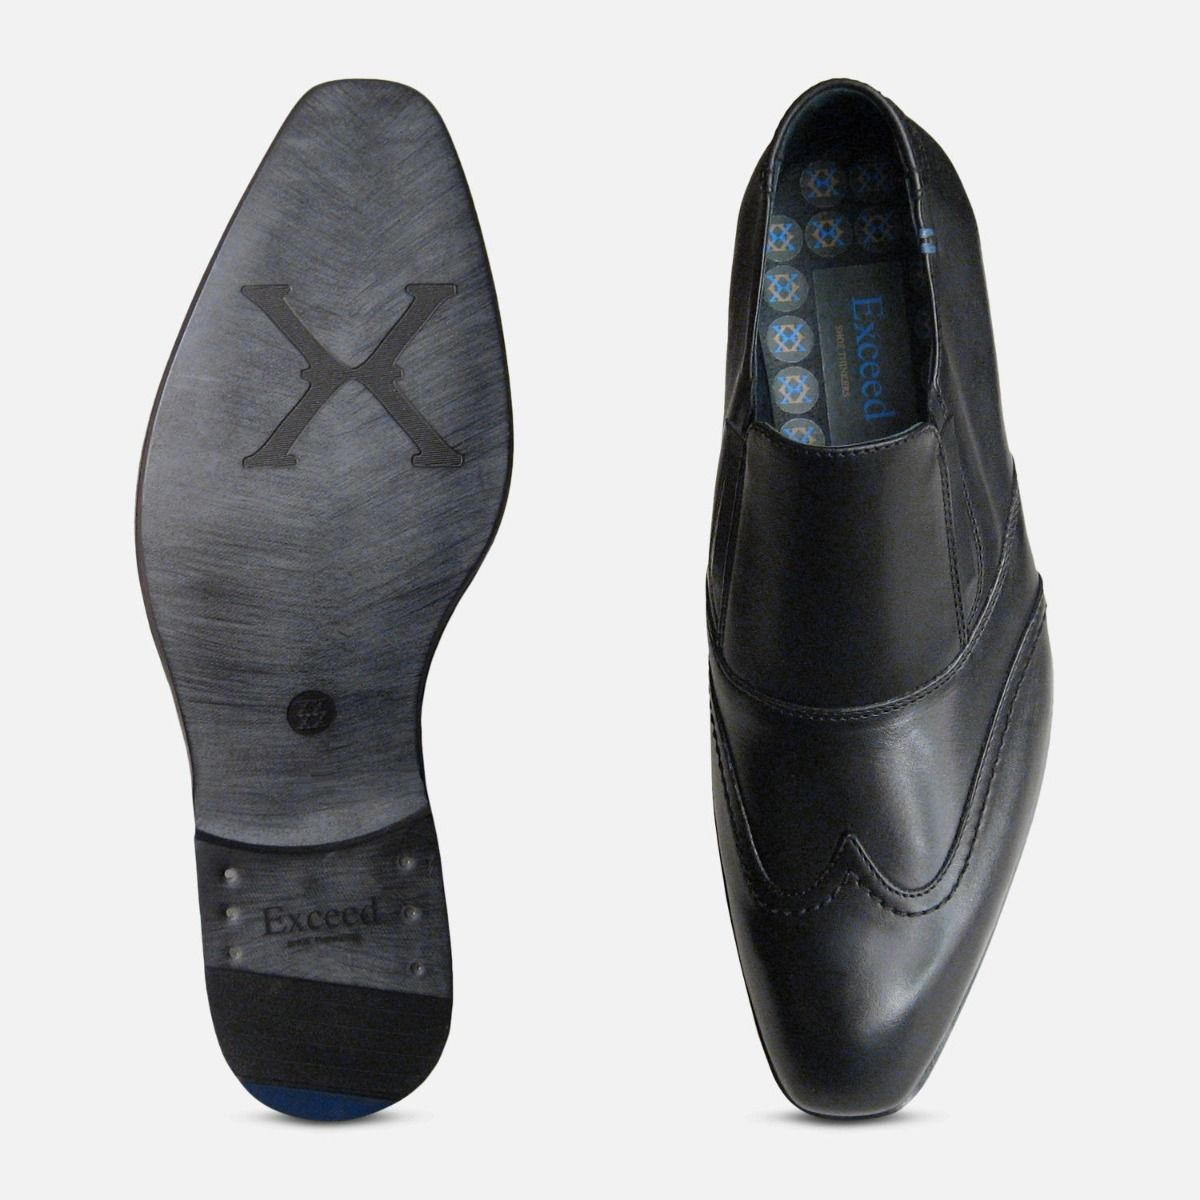 Matrix Loafers in Black by Exceed Shoes